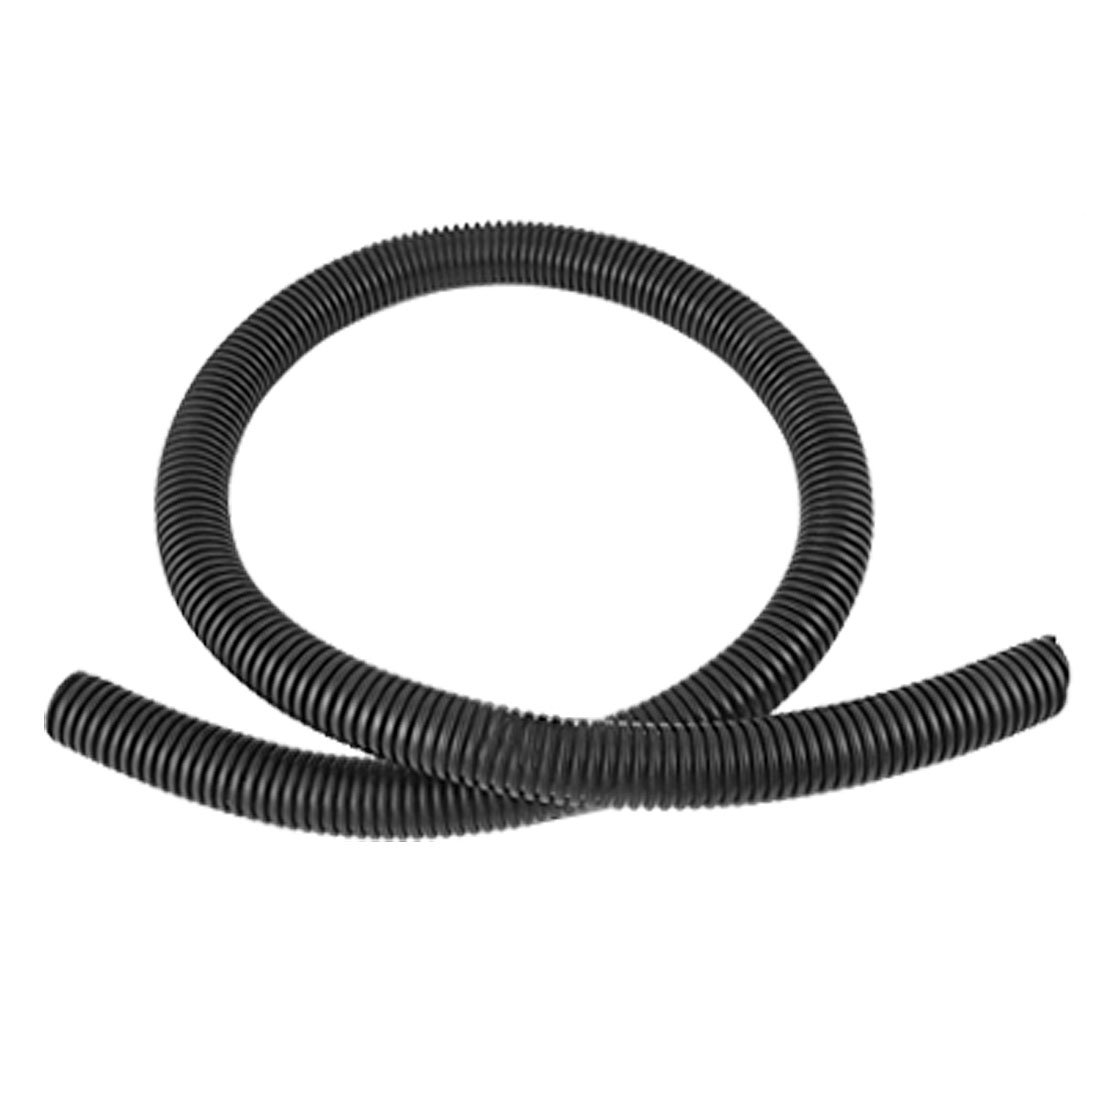 Uxcell 1m 20mm Inner Diameter Plastic Corrugated Tube Electric China Pvc Electrical Pipe For Conduit Wiring Photos Pictures Made Black